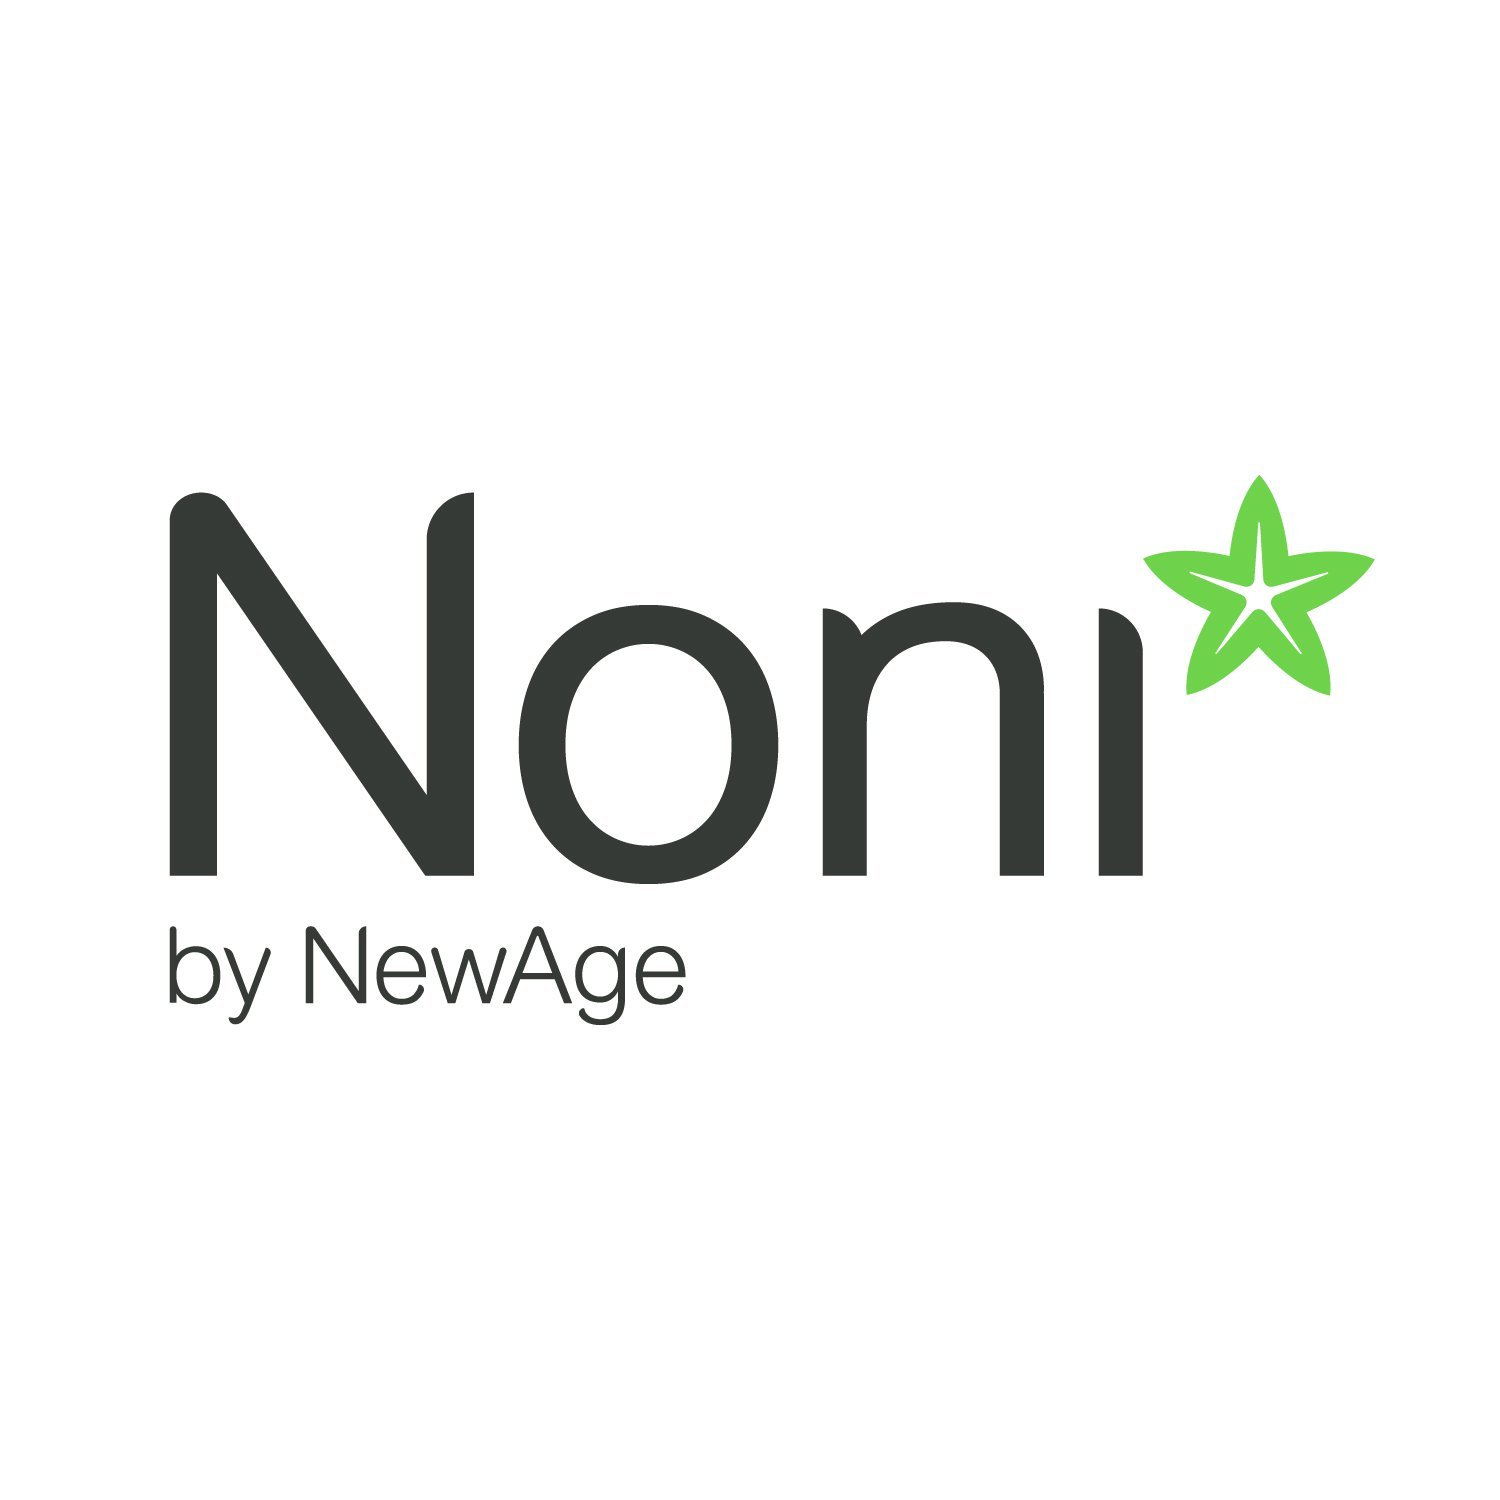 David Vanderveen Nama COO Baru Noni by NewAge article image